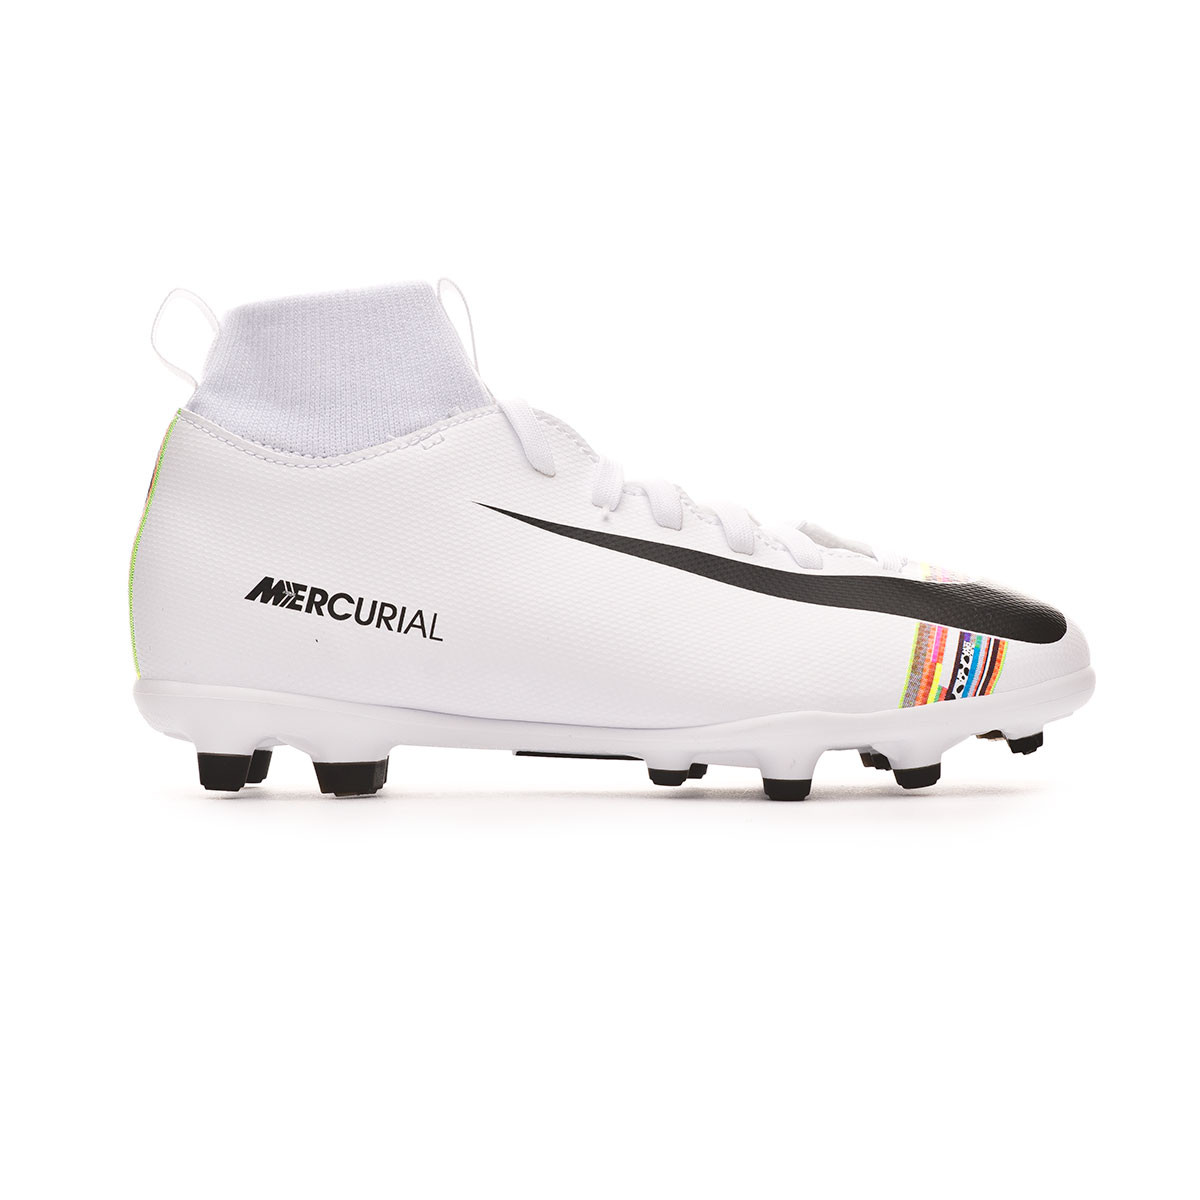 53721e1bd Football Boots Nike Mercurial Superfly VI Club LVL UP MG Niño White-Black - Football  store Fútbol Emotion